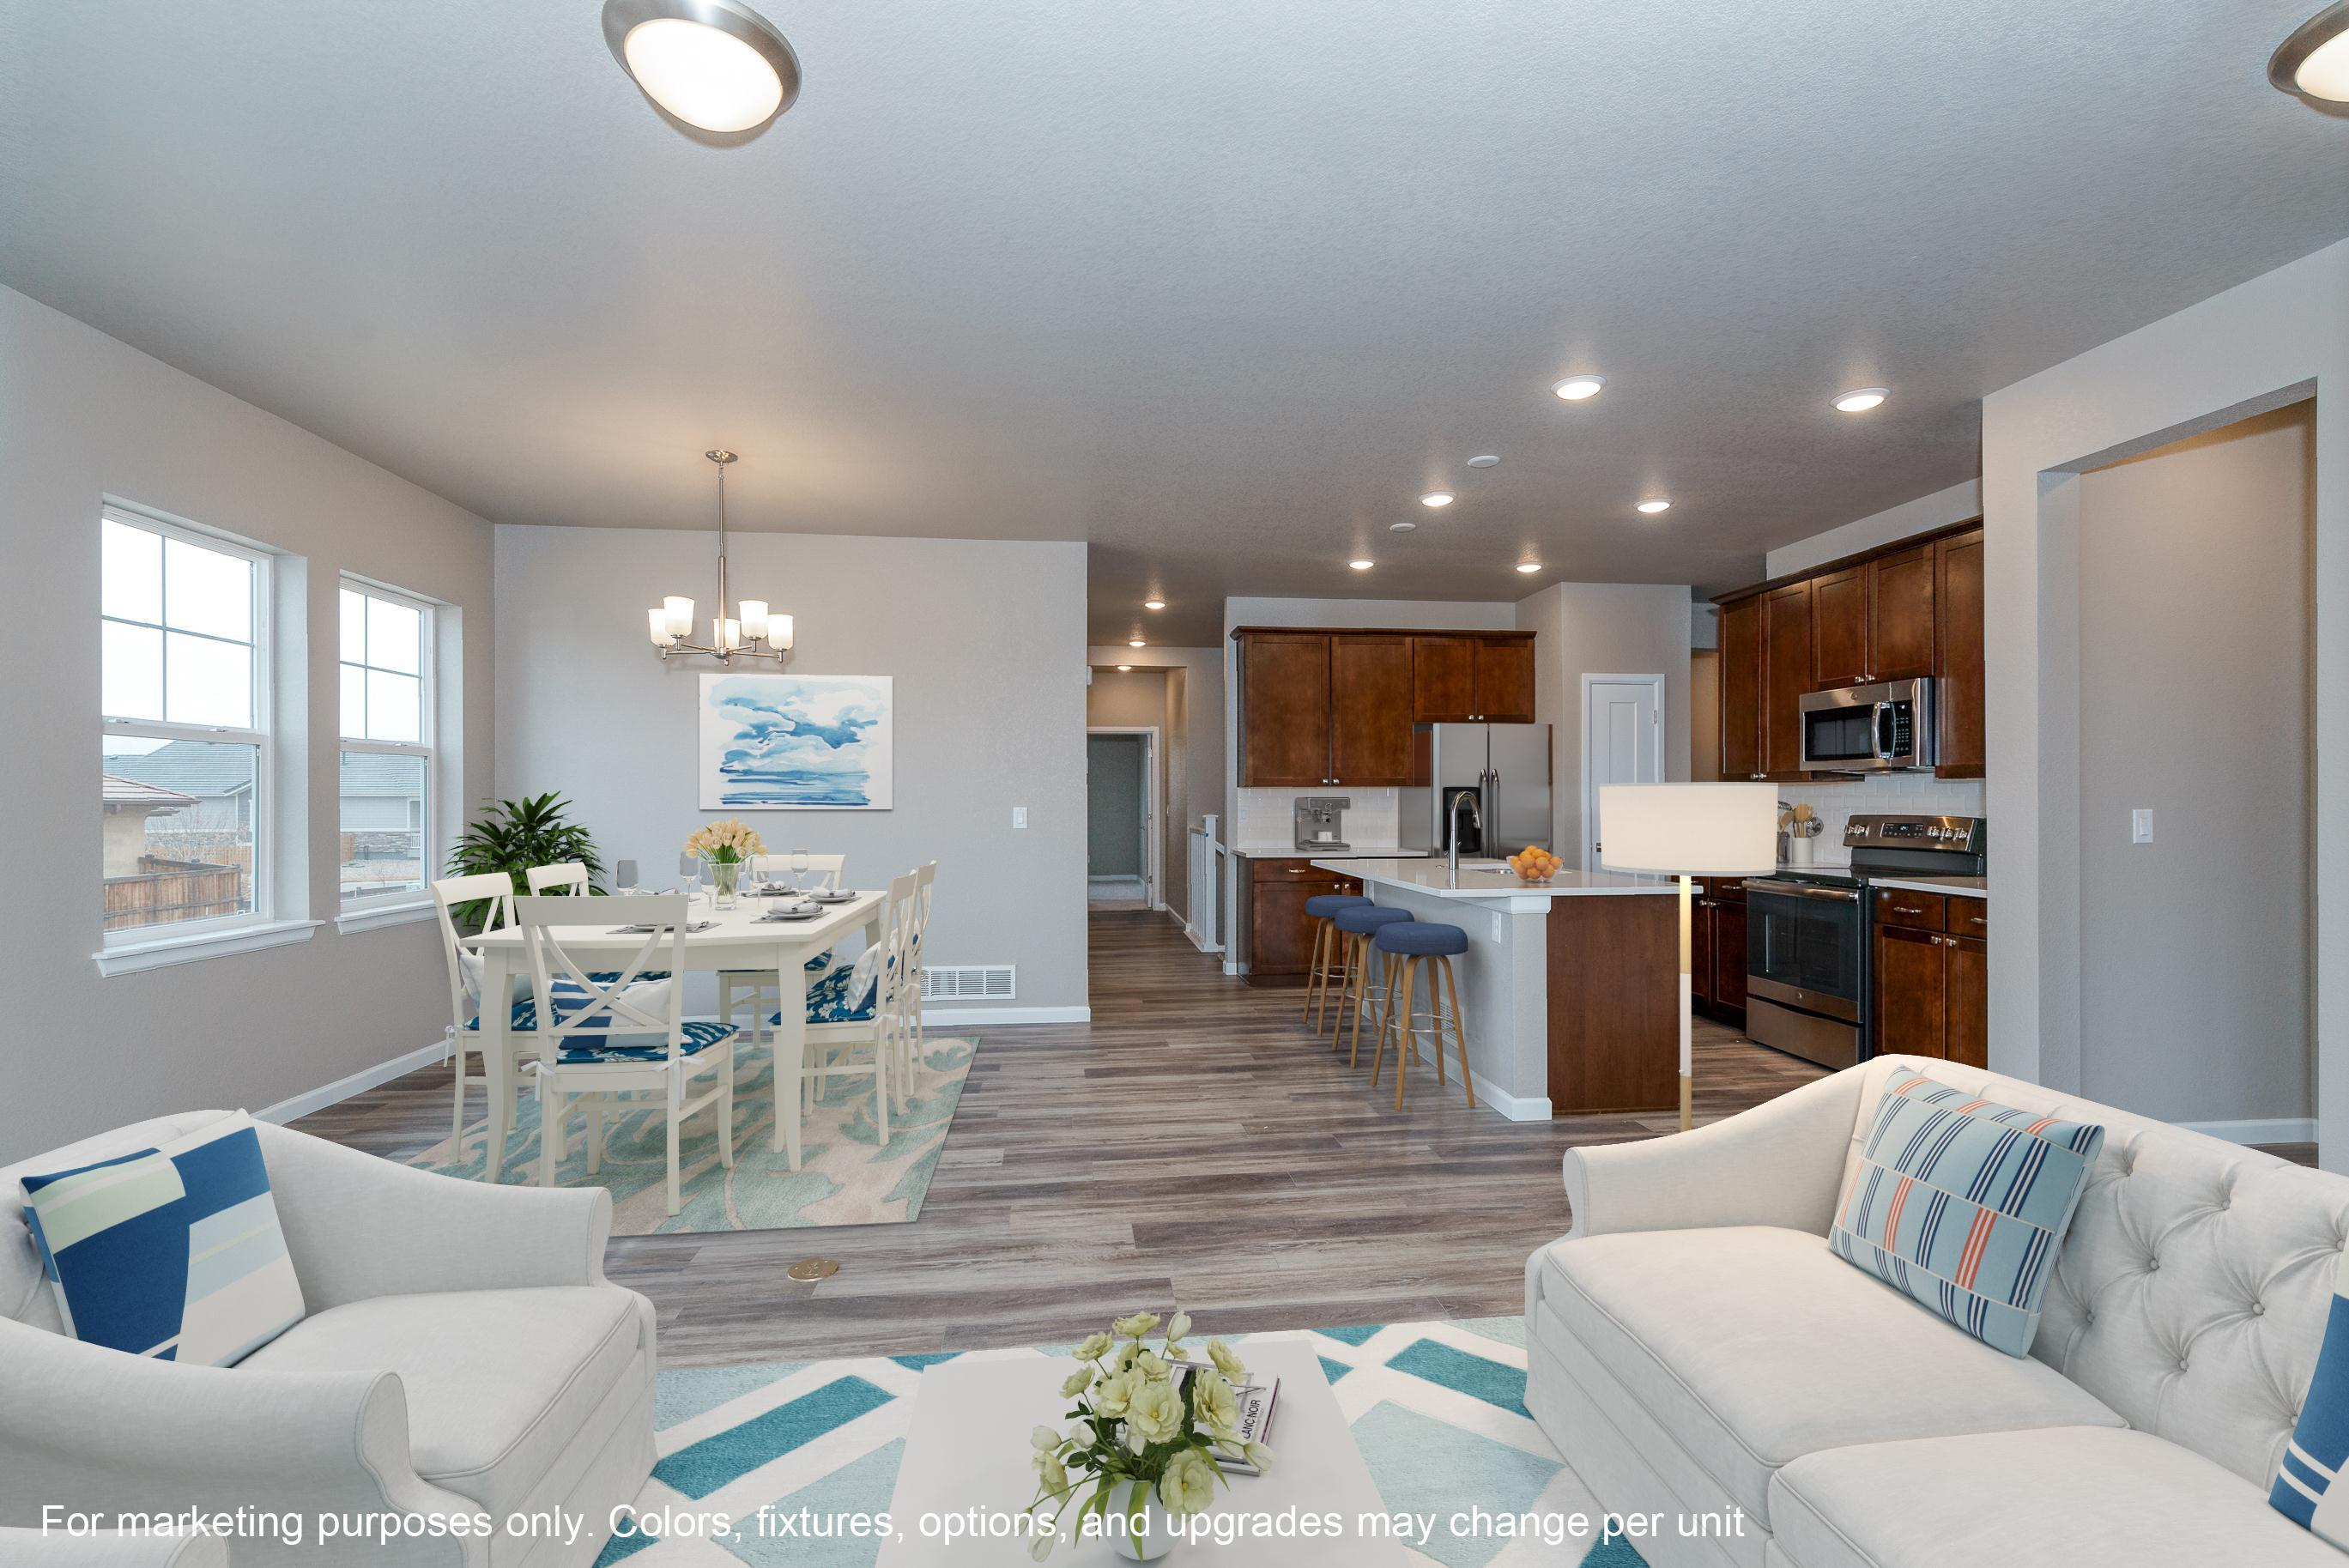 Living Area featured in The Dupont By JM Weston Homes in Denver, CO